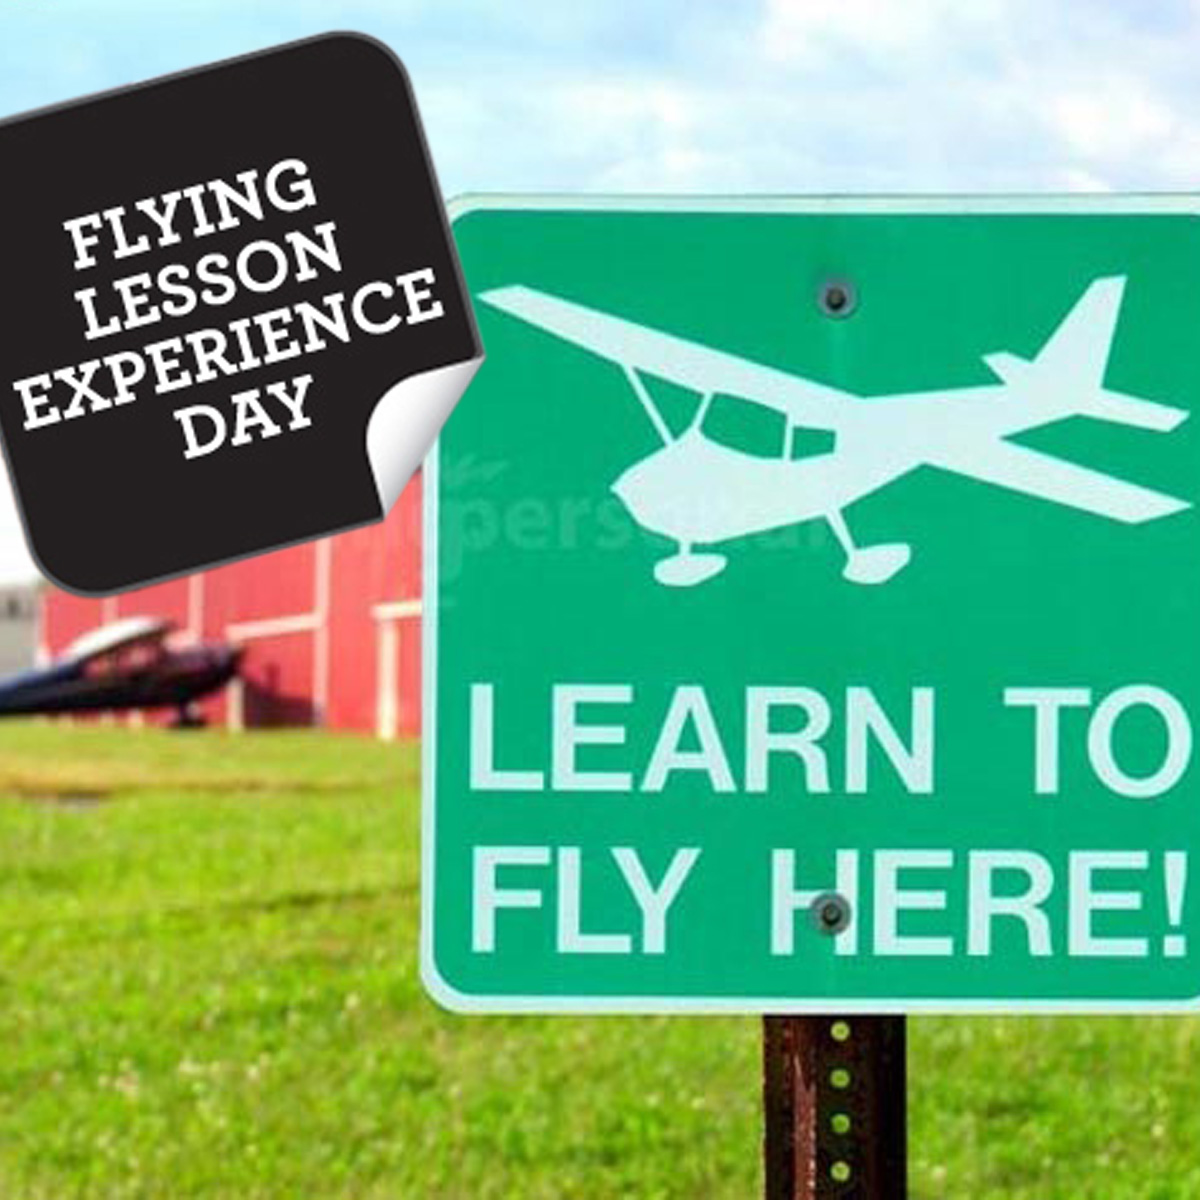 Flying Lesson Experience Day